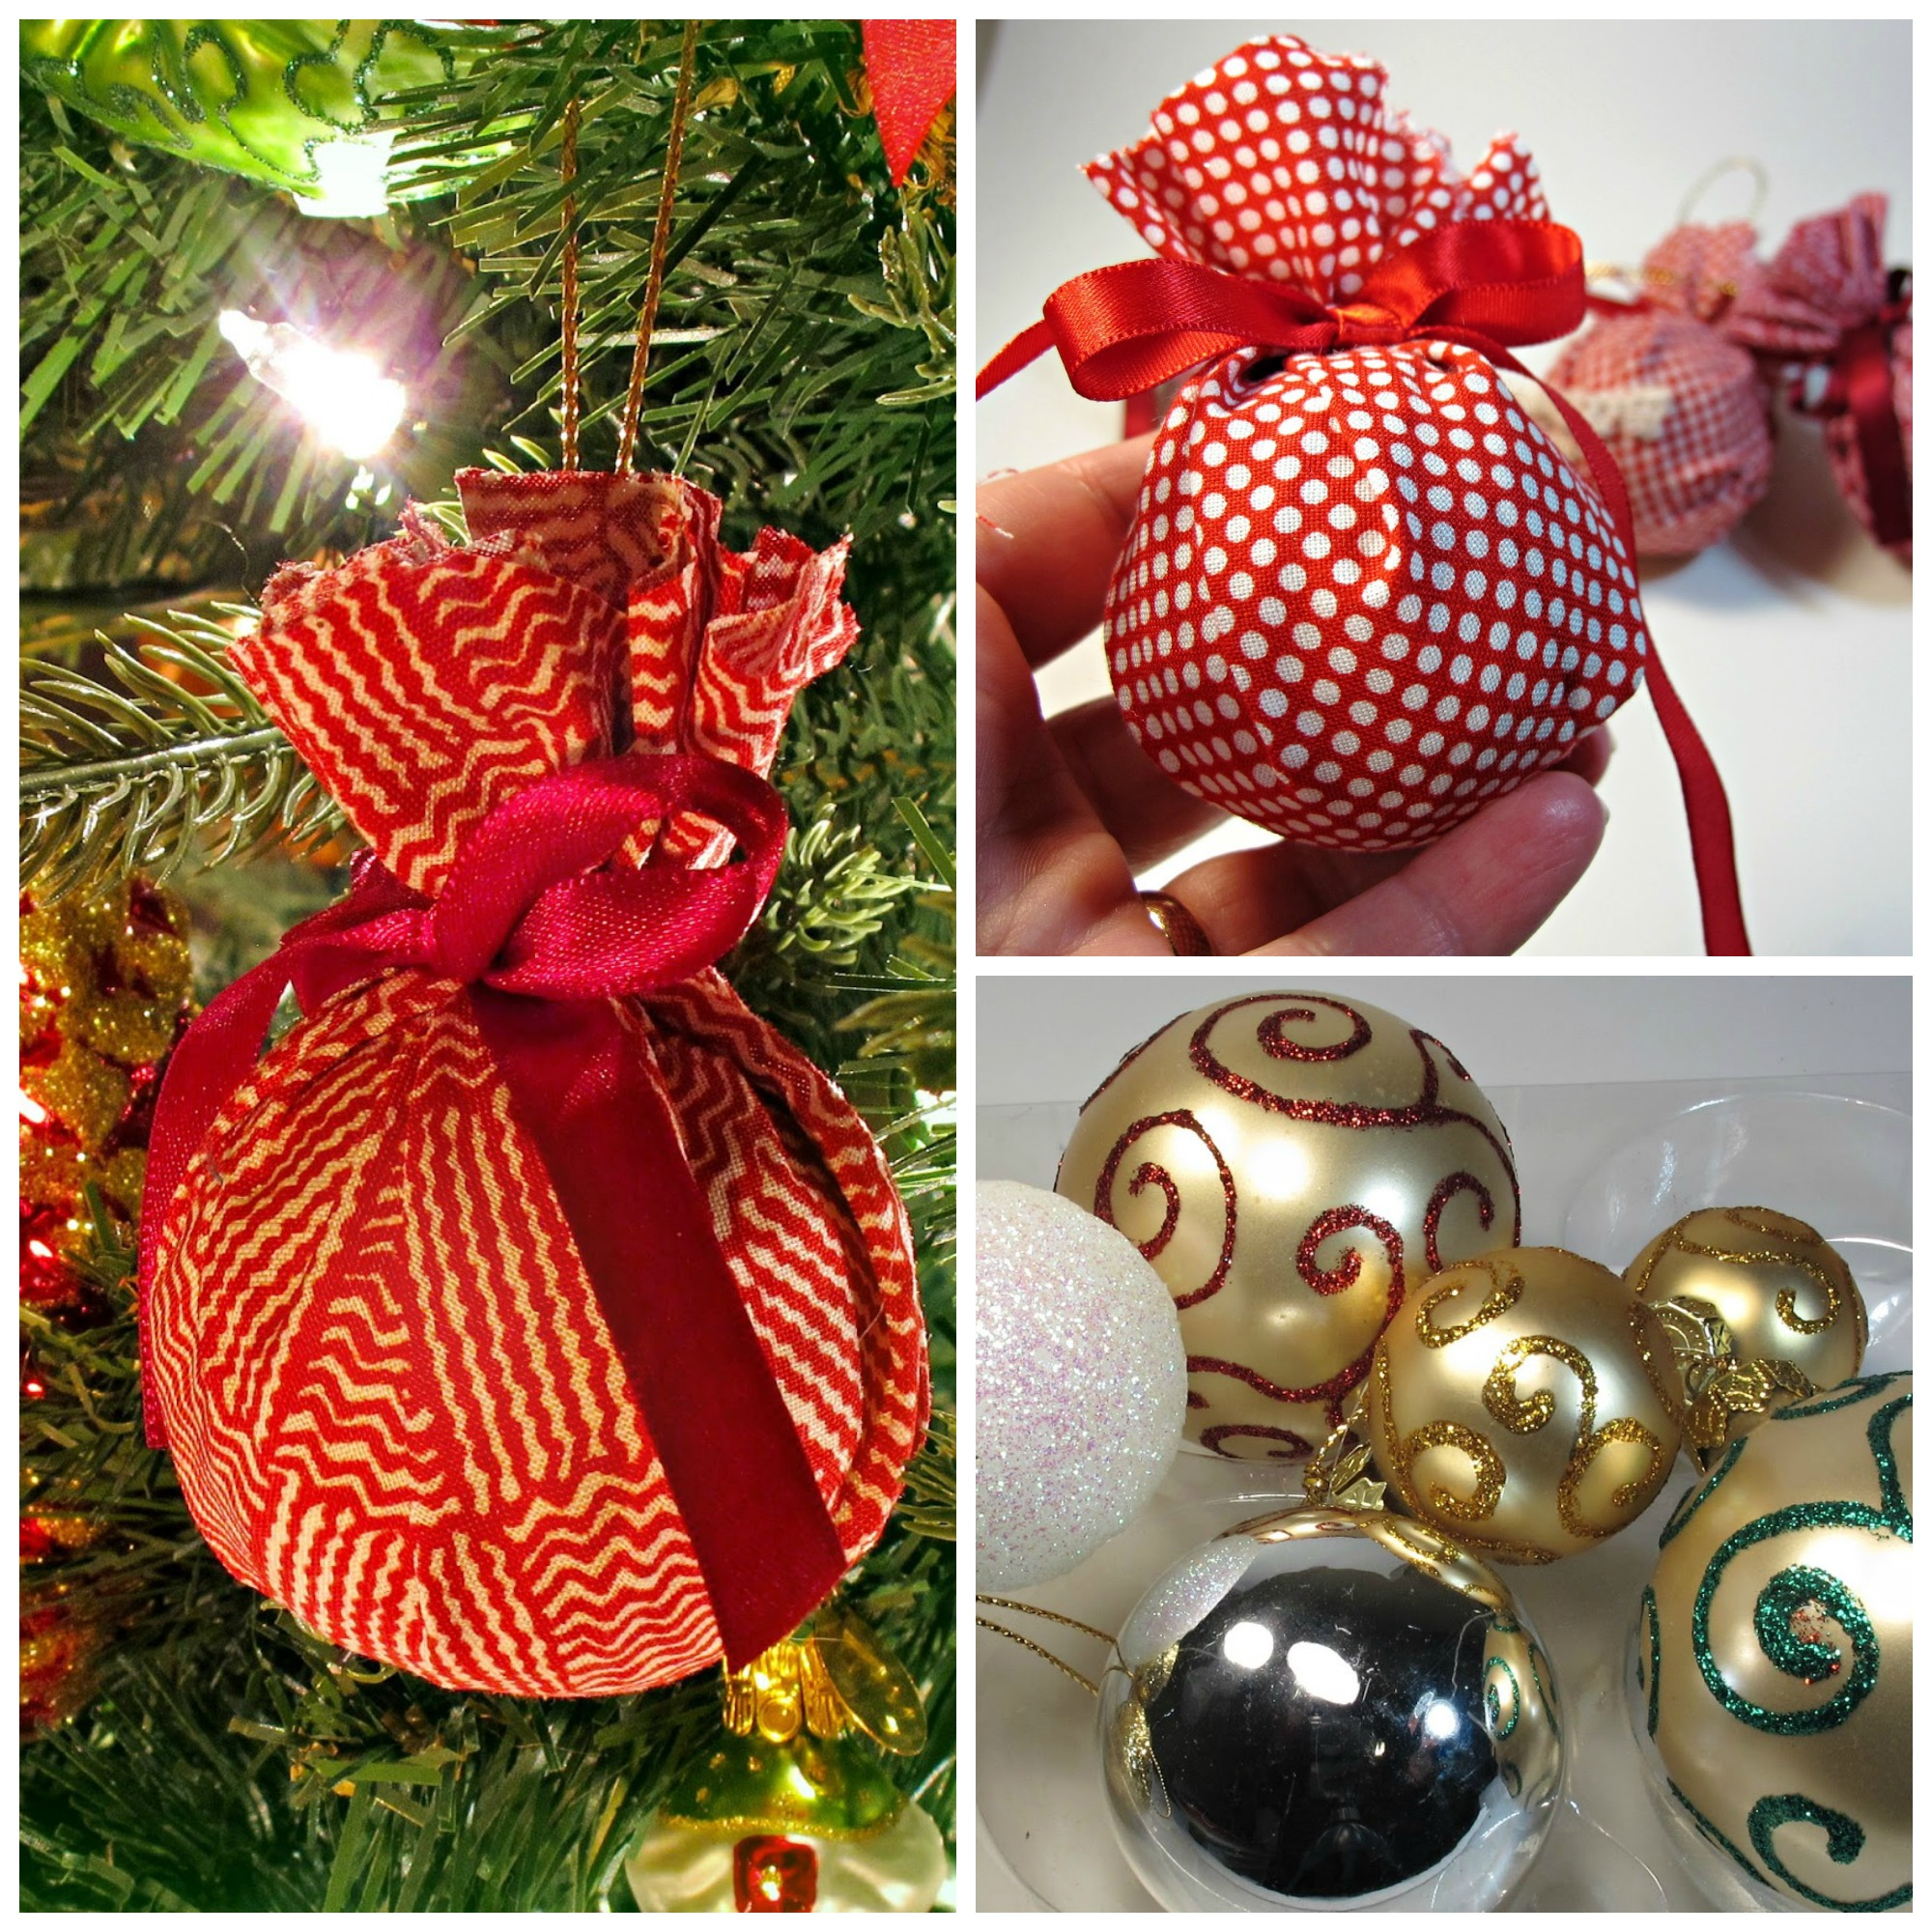 2 Fun Upcycled Christmas Ornament DIY Projects